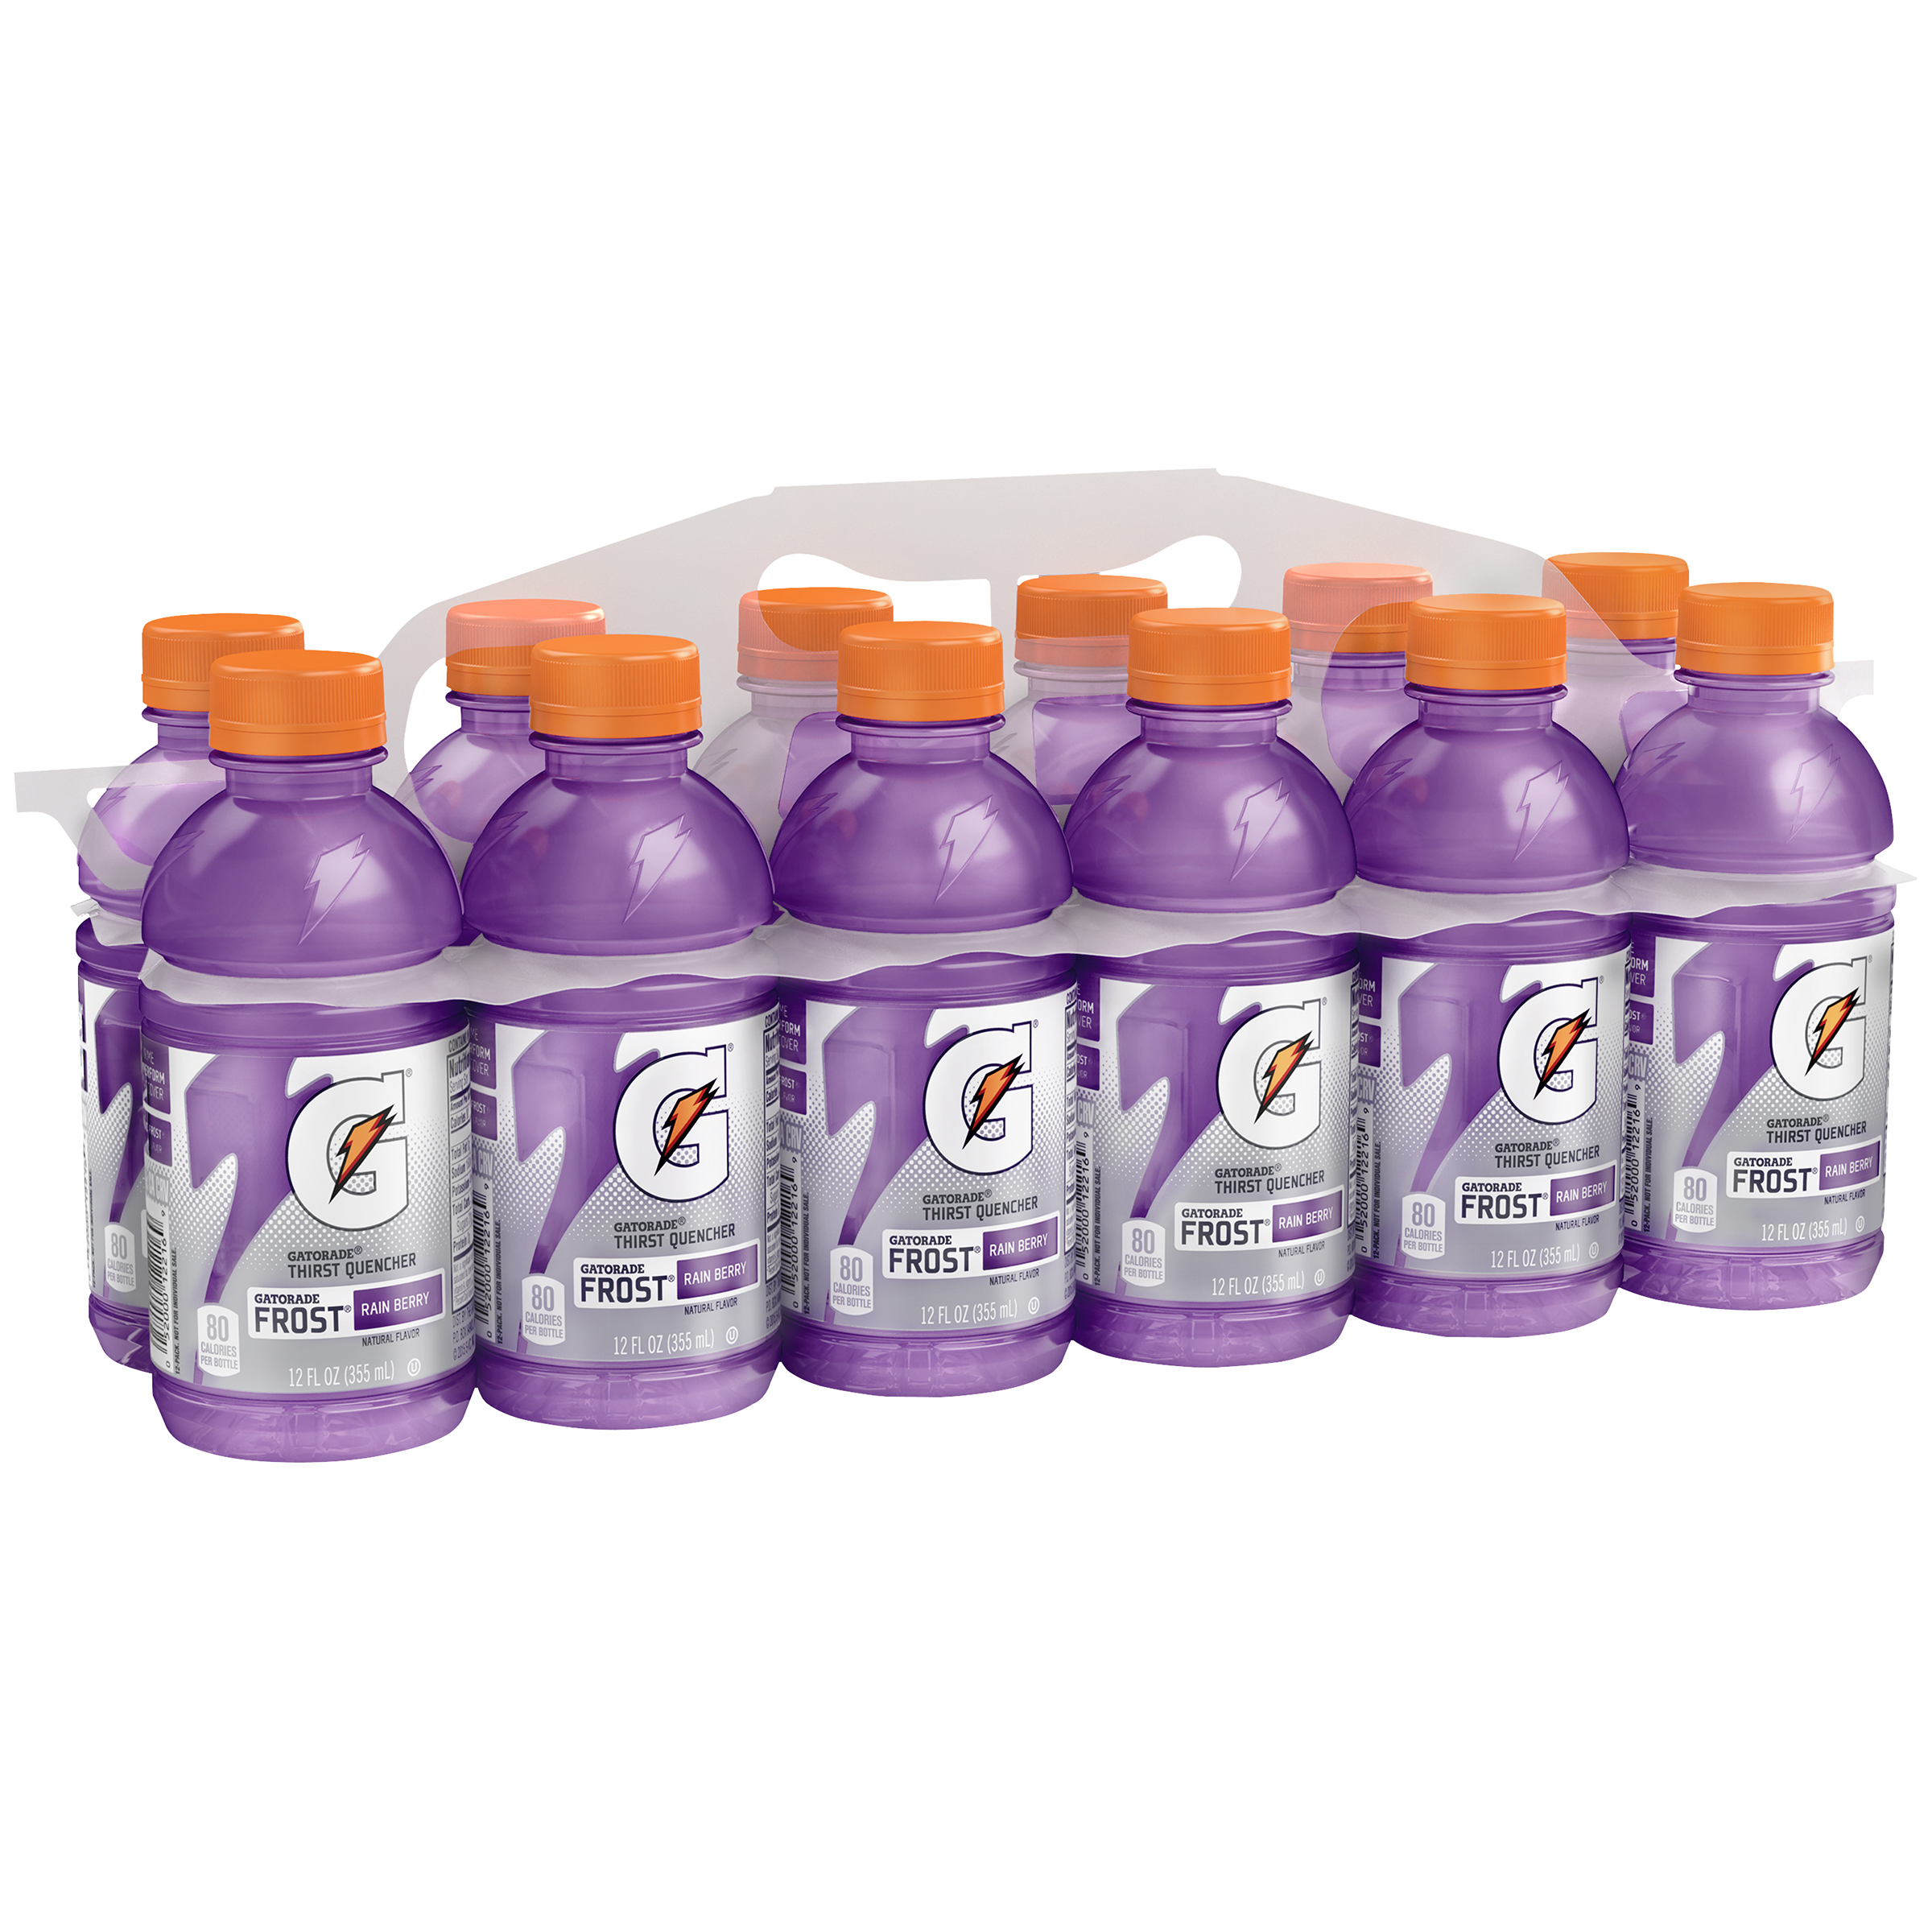 Gatorade Thirst Quencher Frost Rain Berry Drink, 12 Fl. Oz., 12 Count